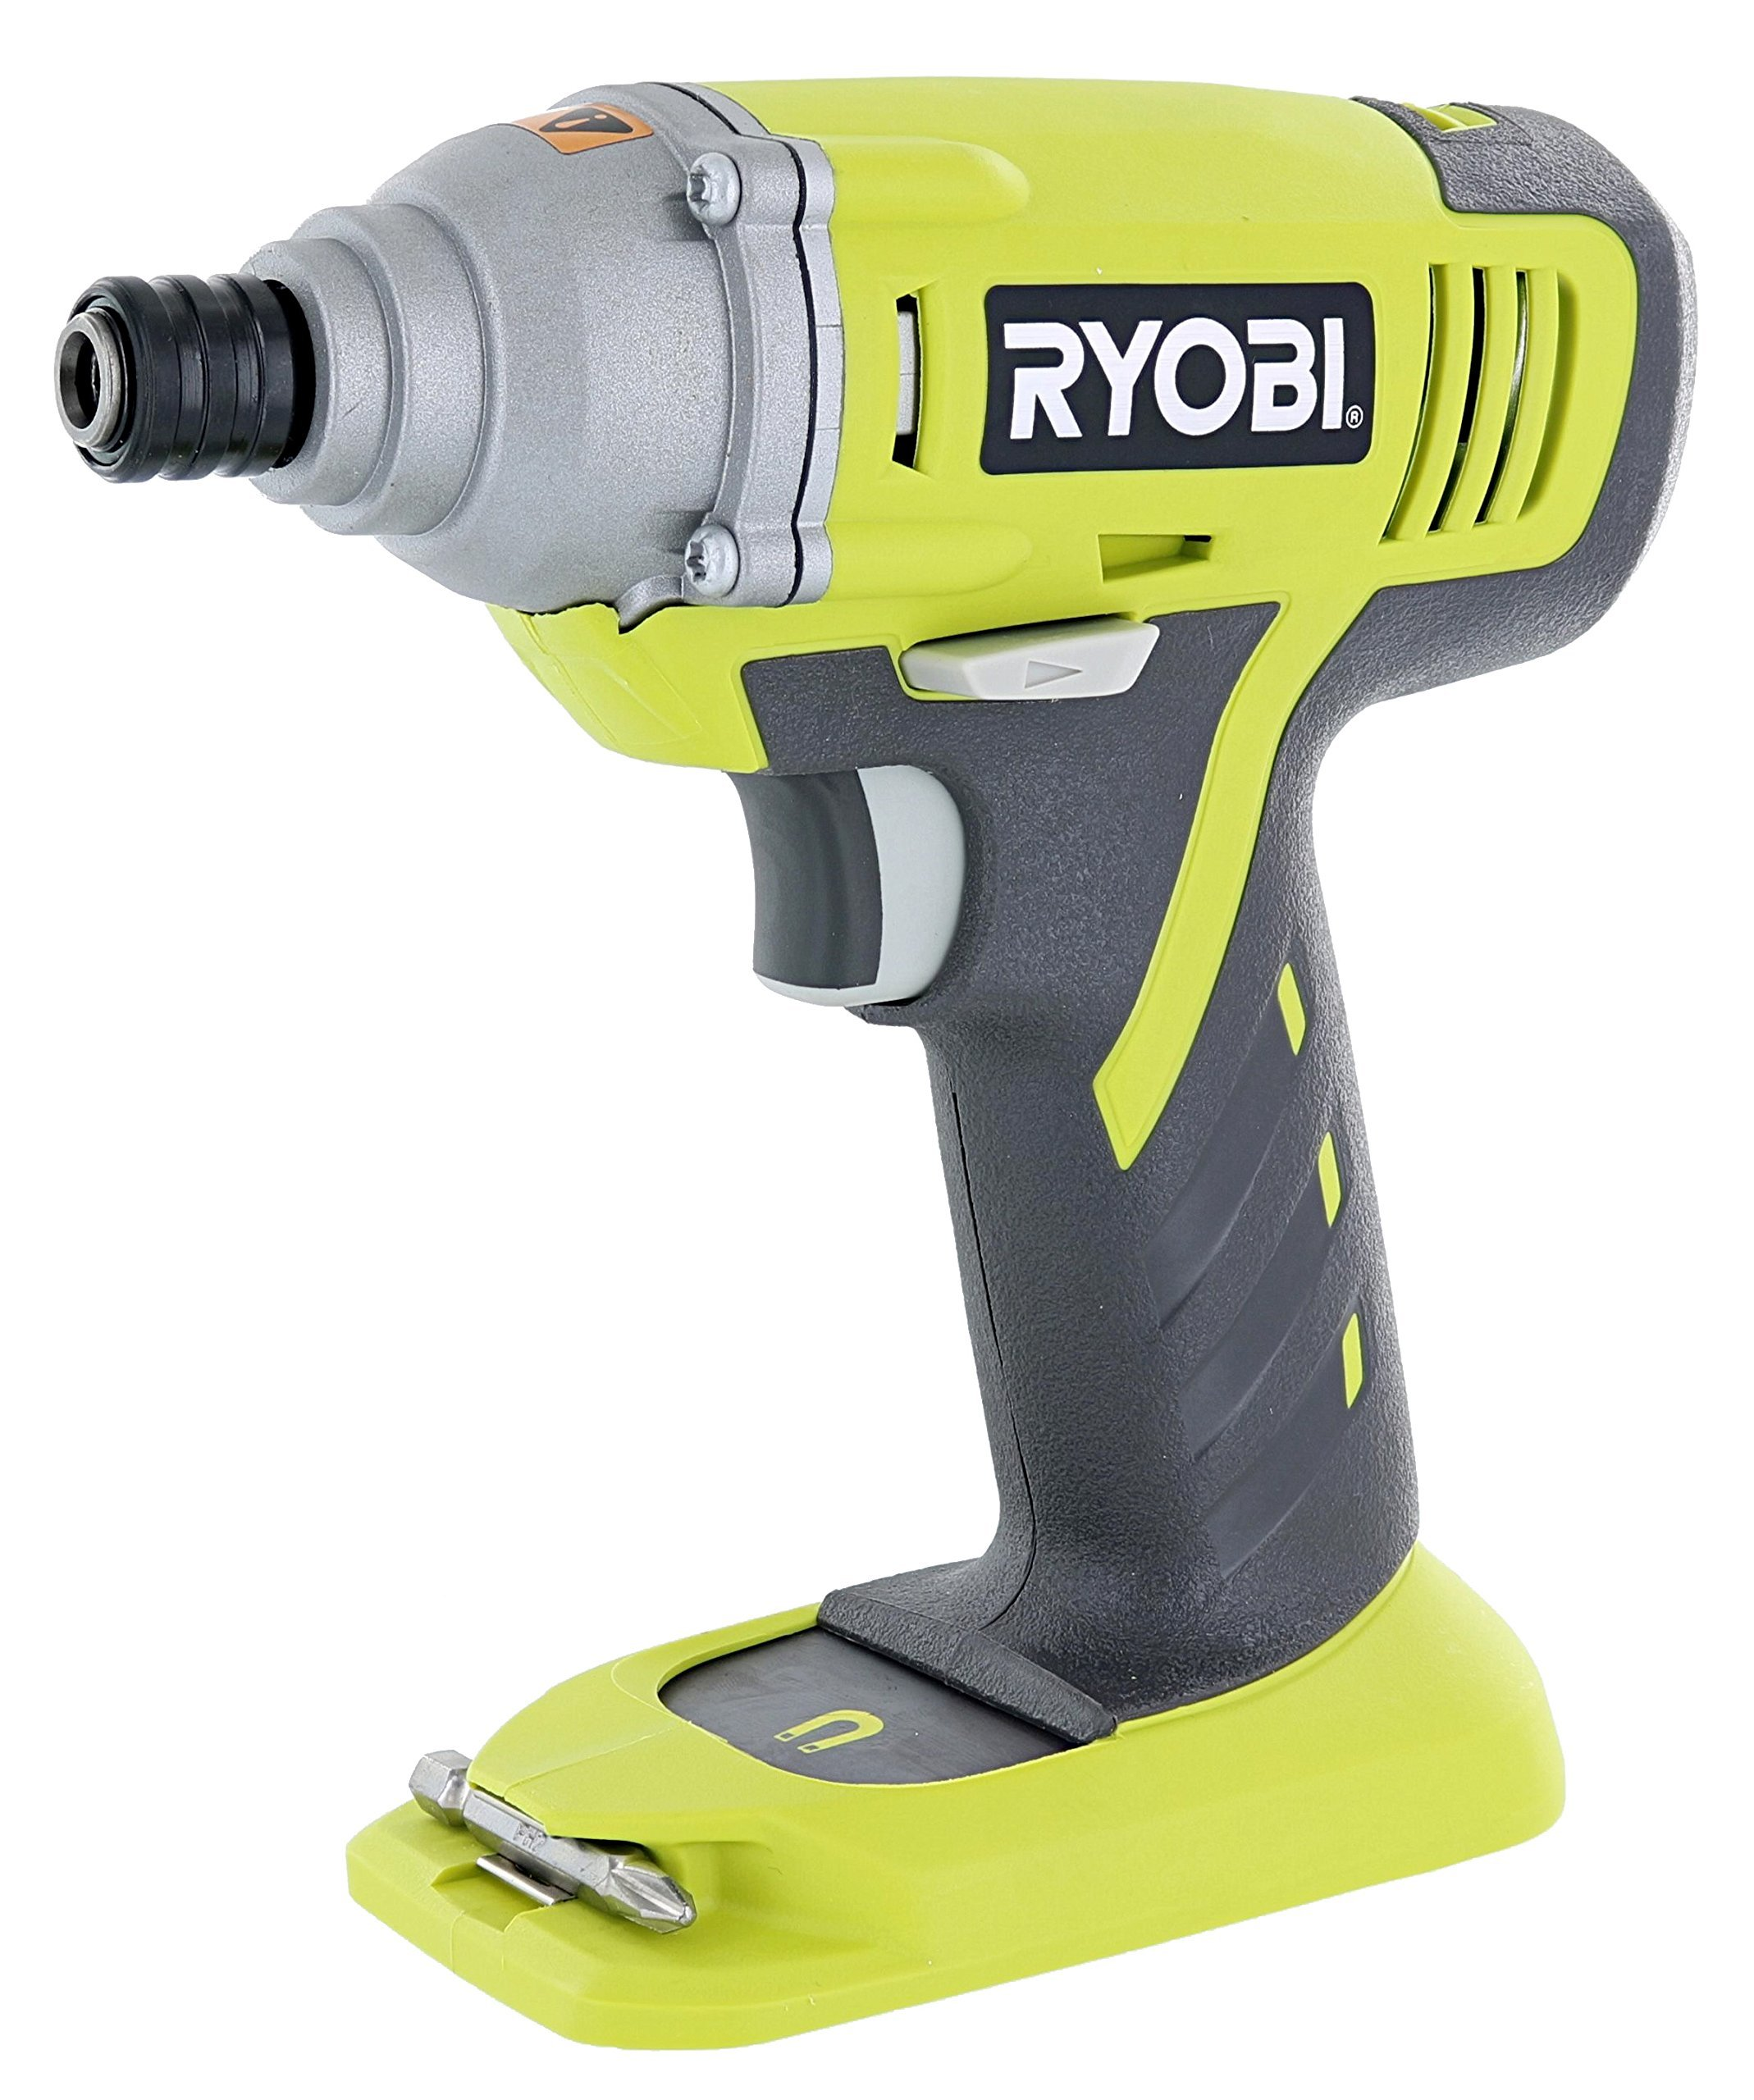 Ryobi P234g One+ 18-Volt Lithium Ion Cordless Impact Driver (Battery Not Included / Power Tool Only) (Certified Refurbished) by Ryobi (Image #1)